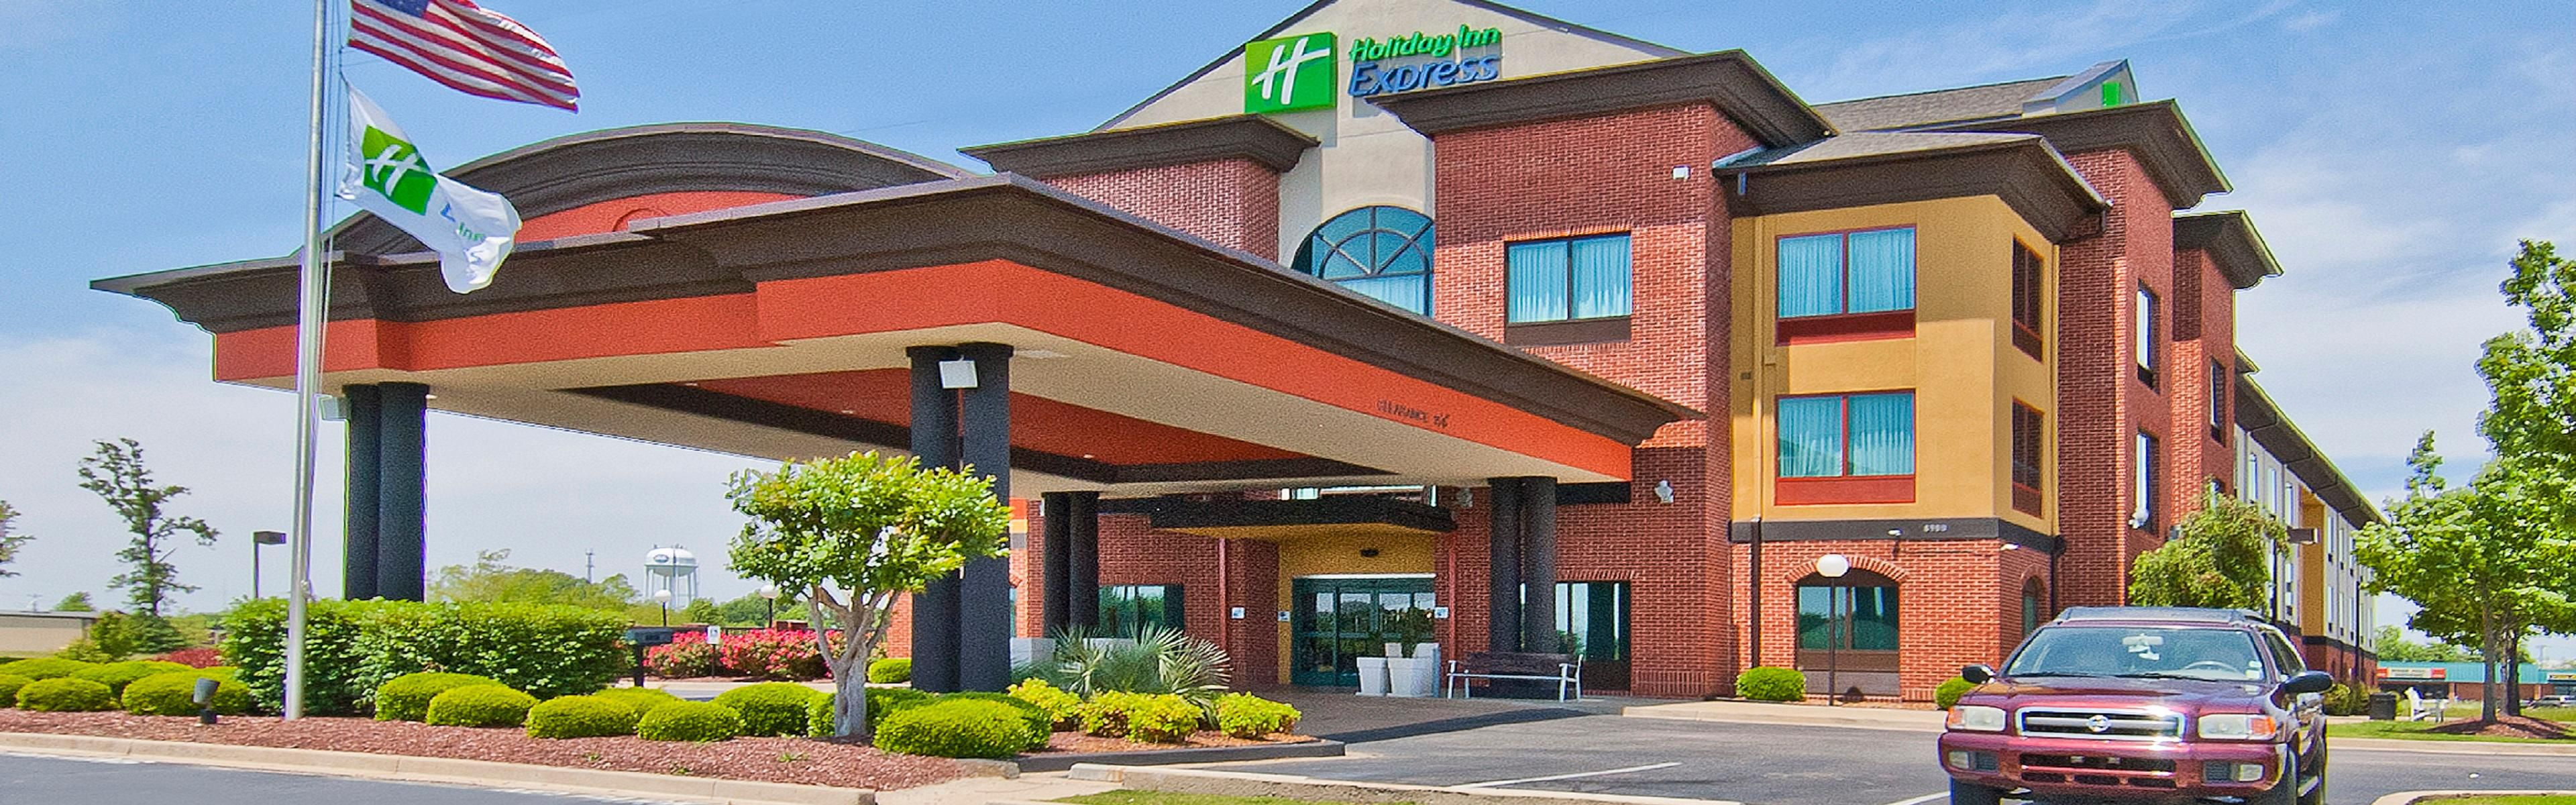 Holiday Inn Express Olive Branch image 0